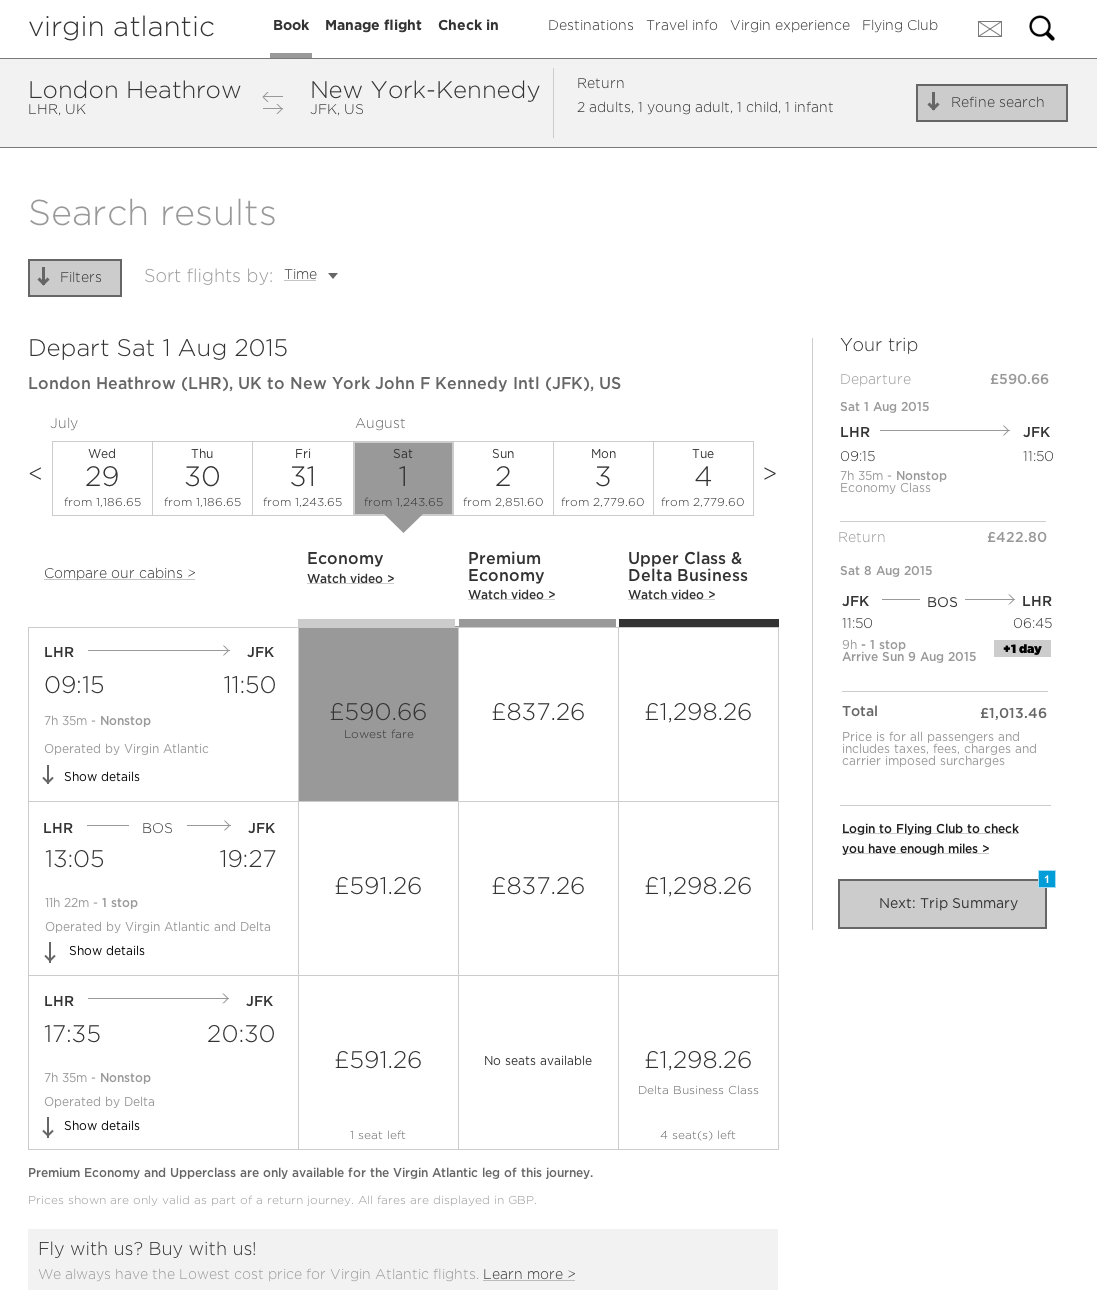 Wireframe - flight search results